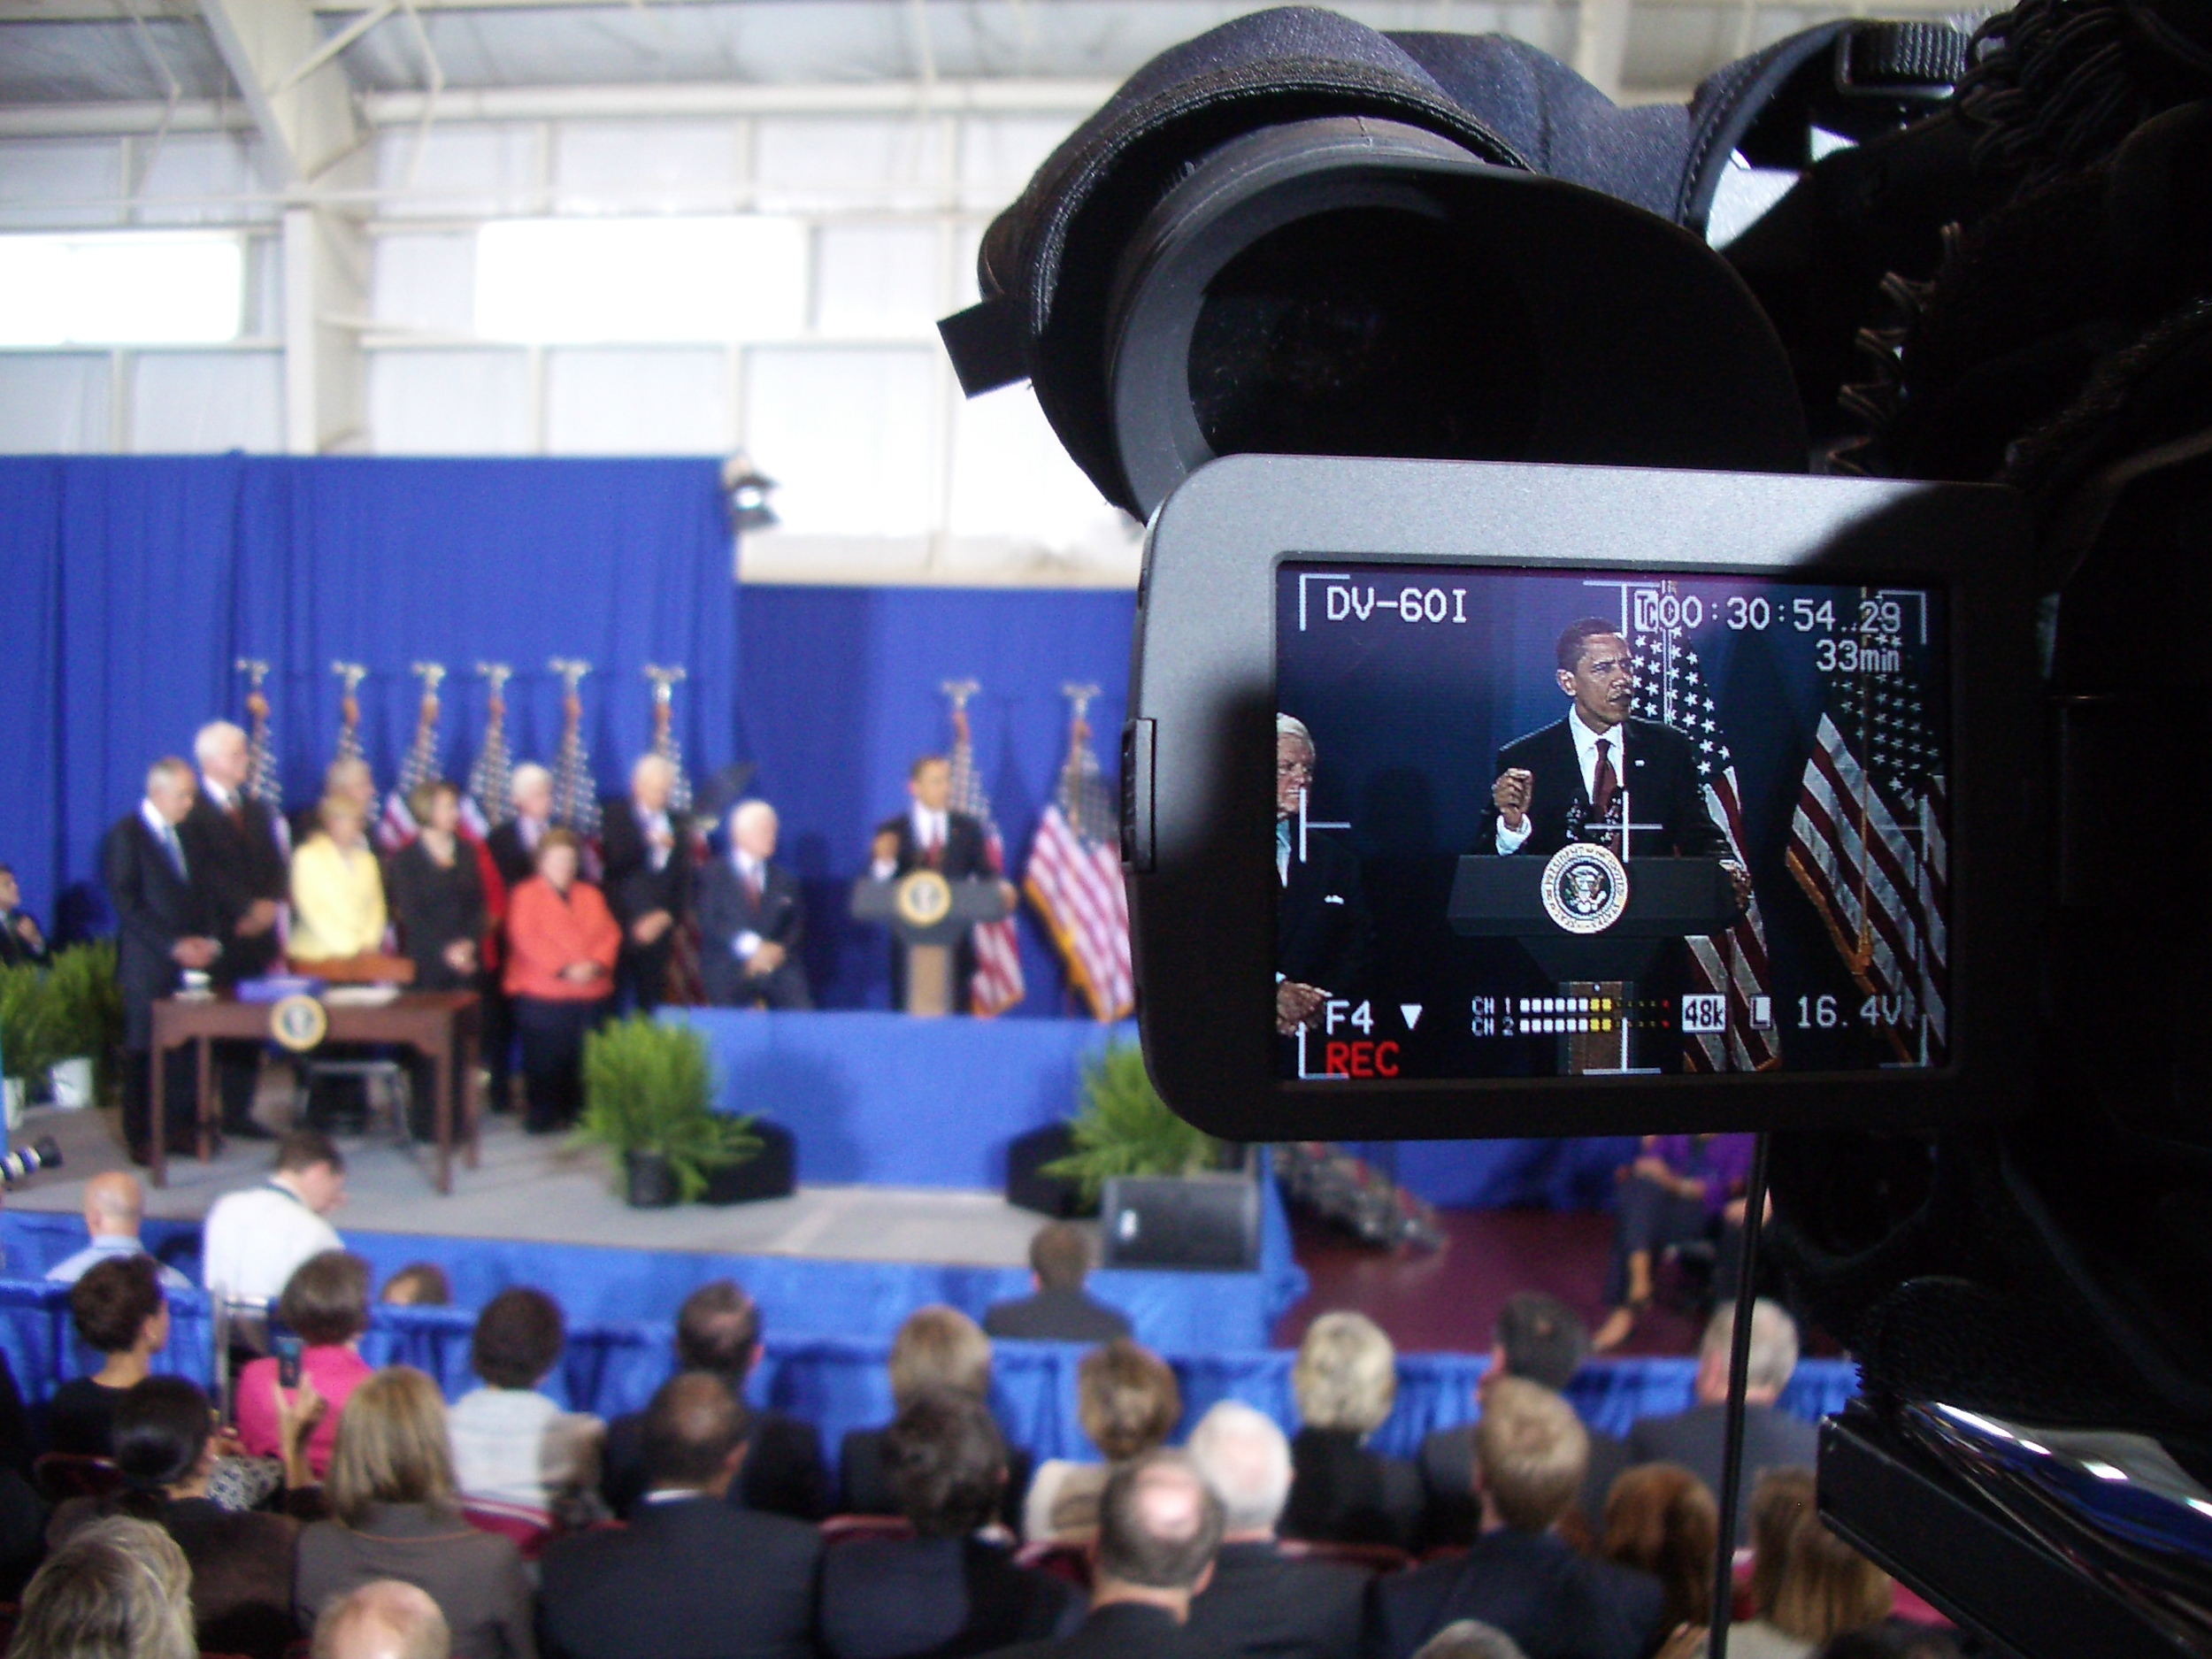 President Obama speaking at the SEED School of Washington D.C.